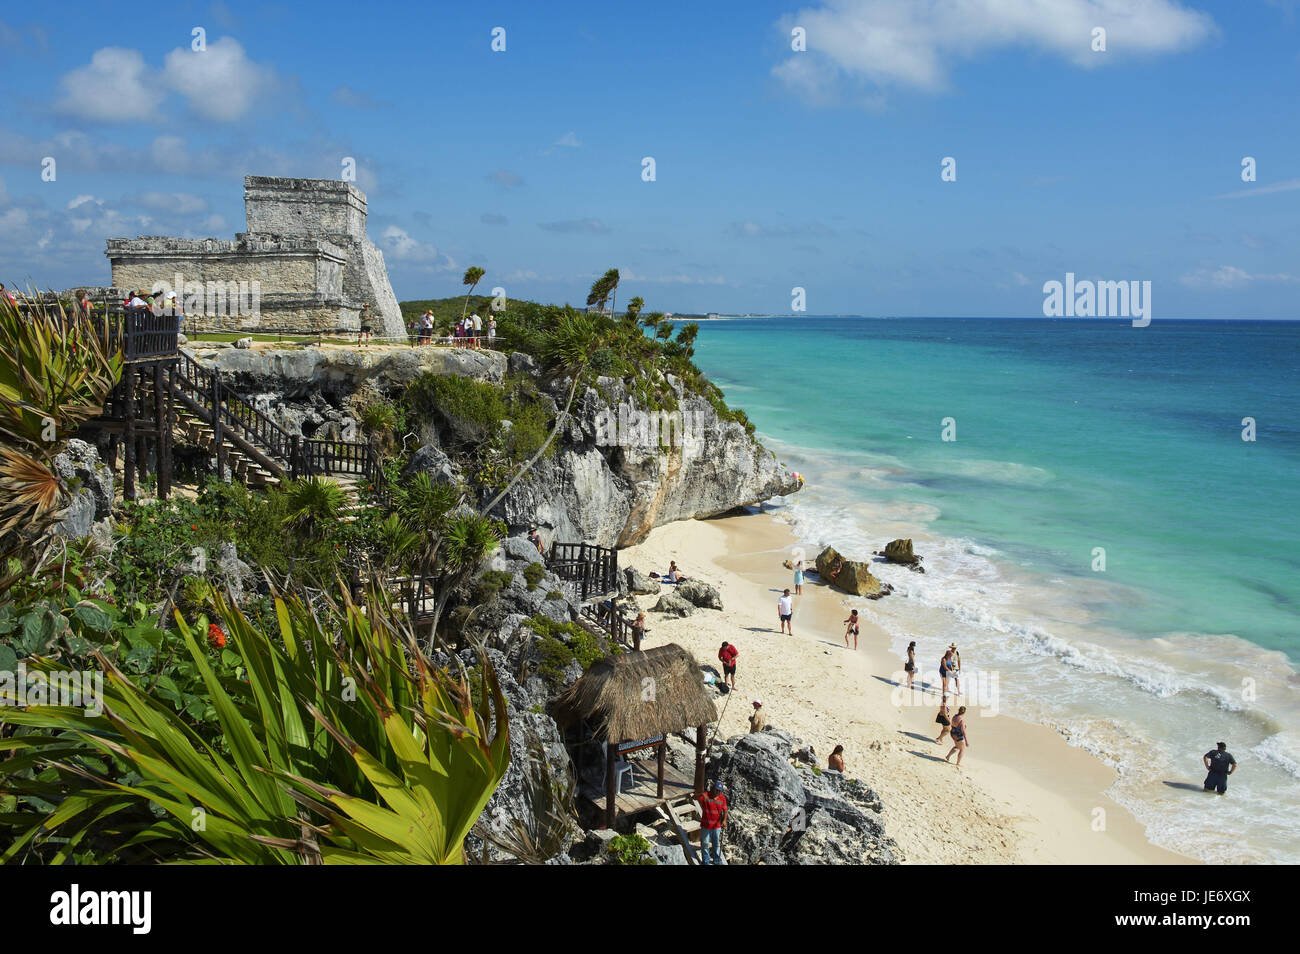 Mexico, Tulum, ruin site, historical Maya ruins, sea, beach, temple el Castillo, - Stock Image